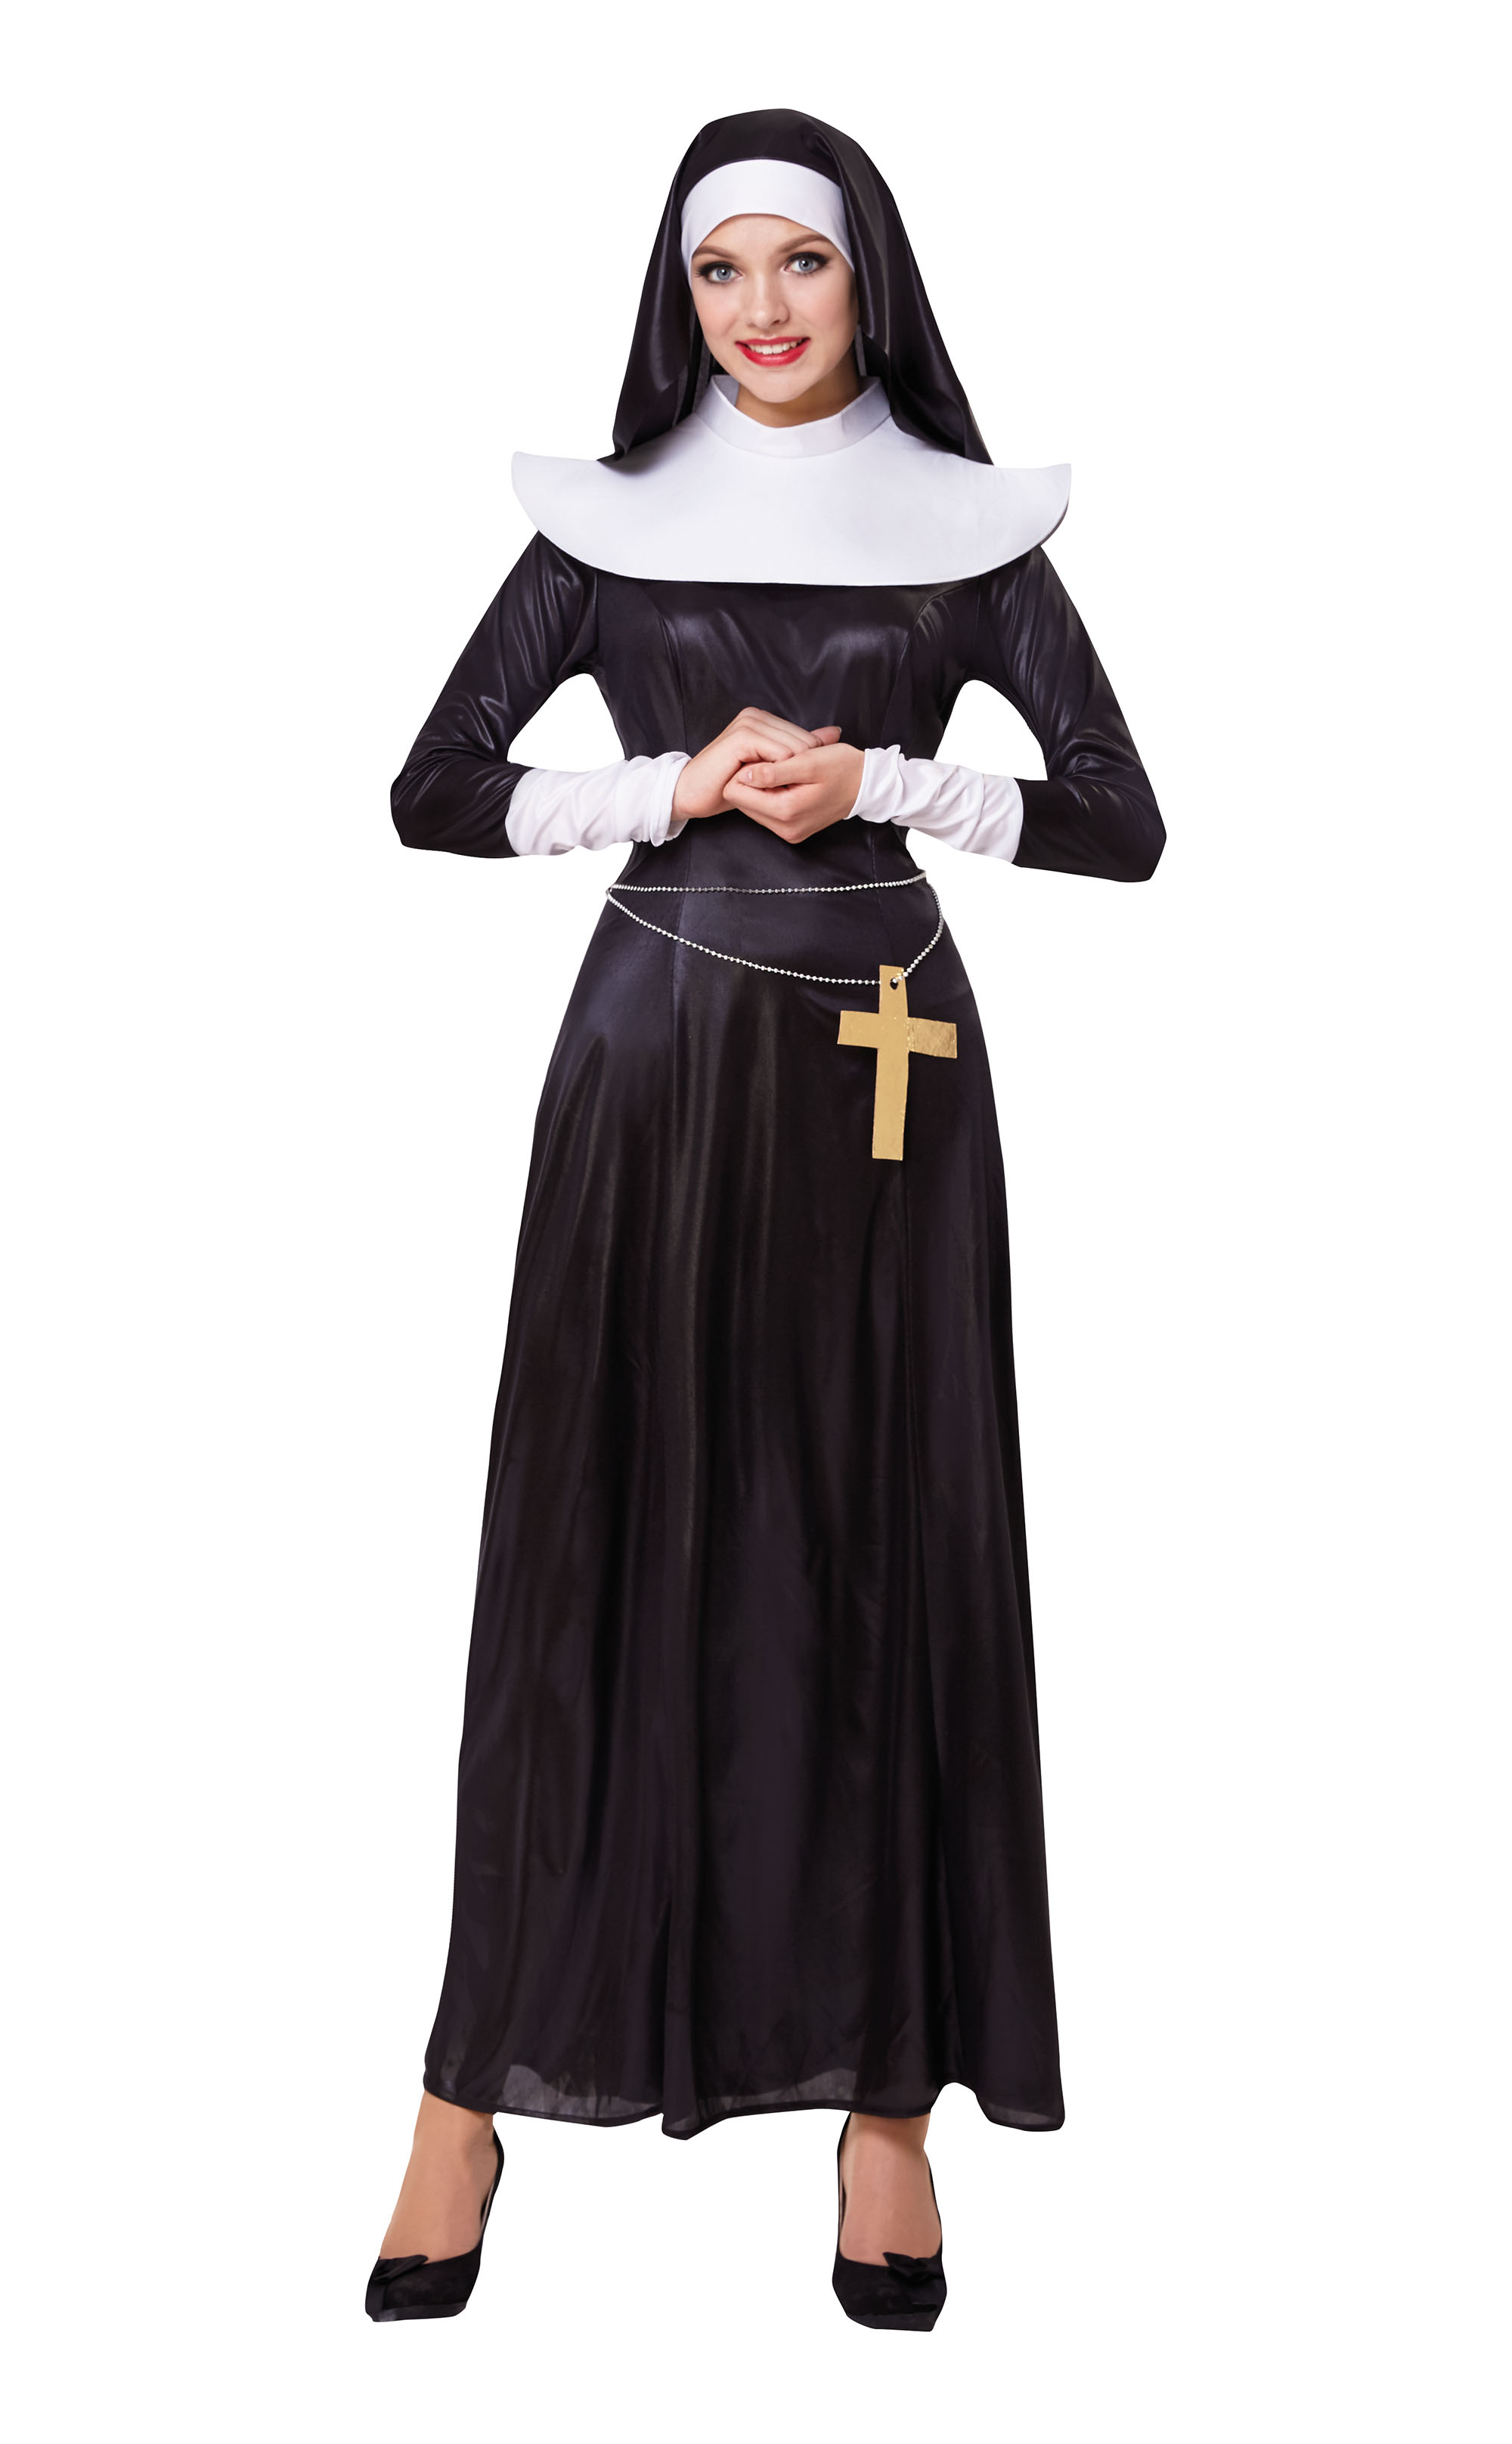 Nun Deluxe Fancy Dress Costume Outfit Womens Adult UK 10-12